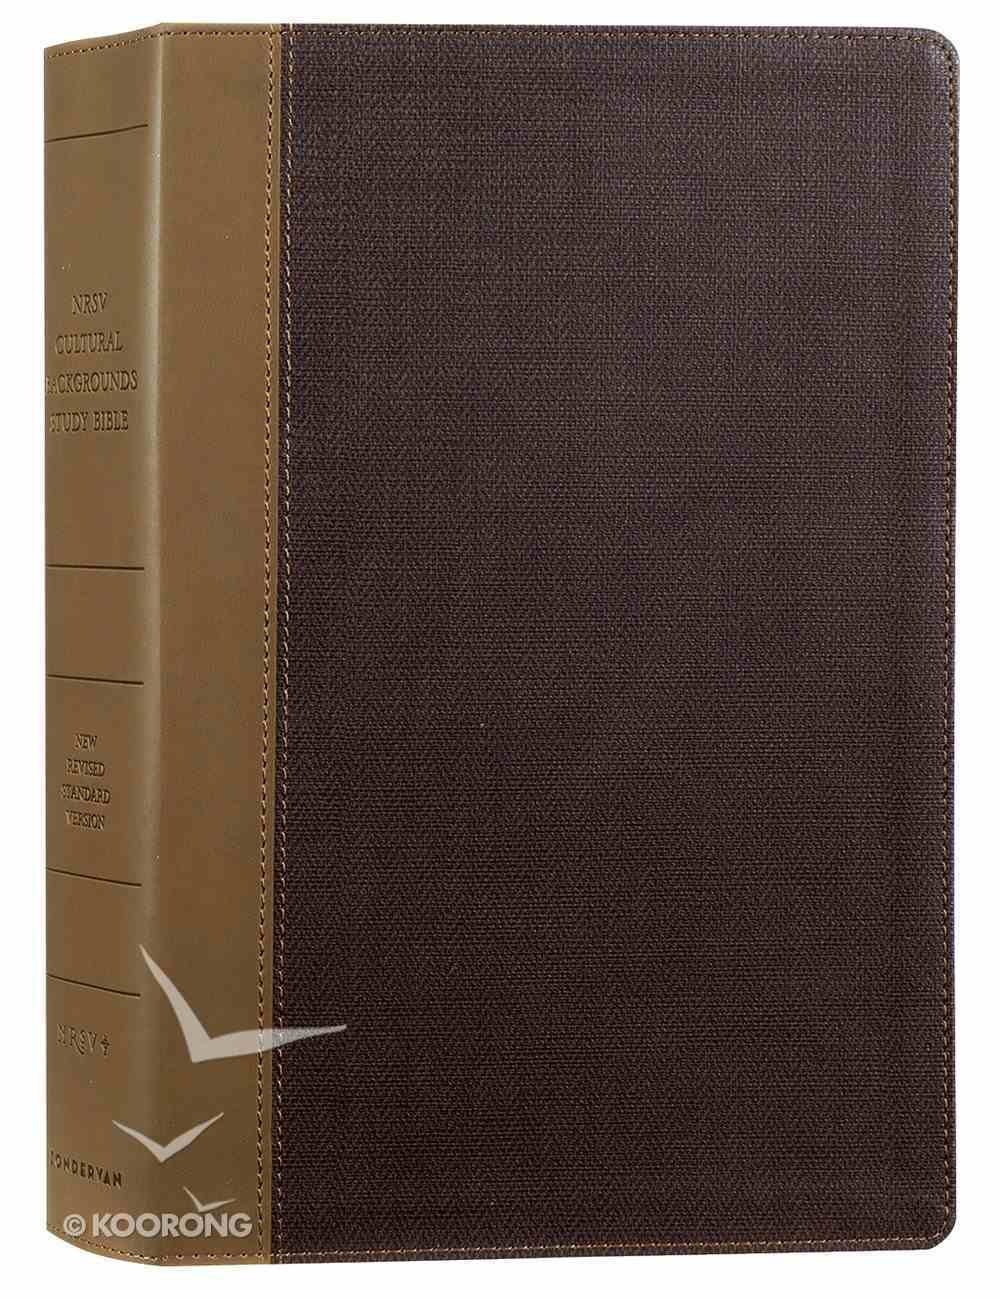 NRSV Cultural Backgrounds Study Bible Tan/Brown Premium Imitation Leather